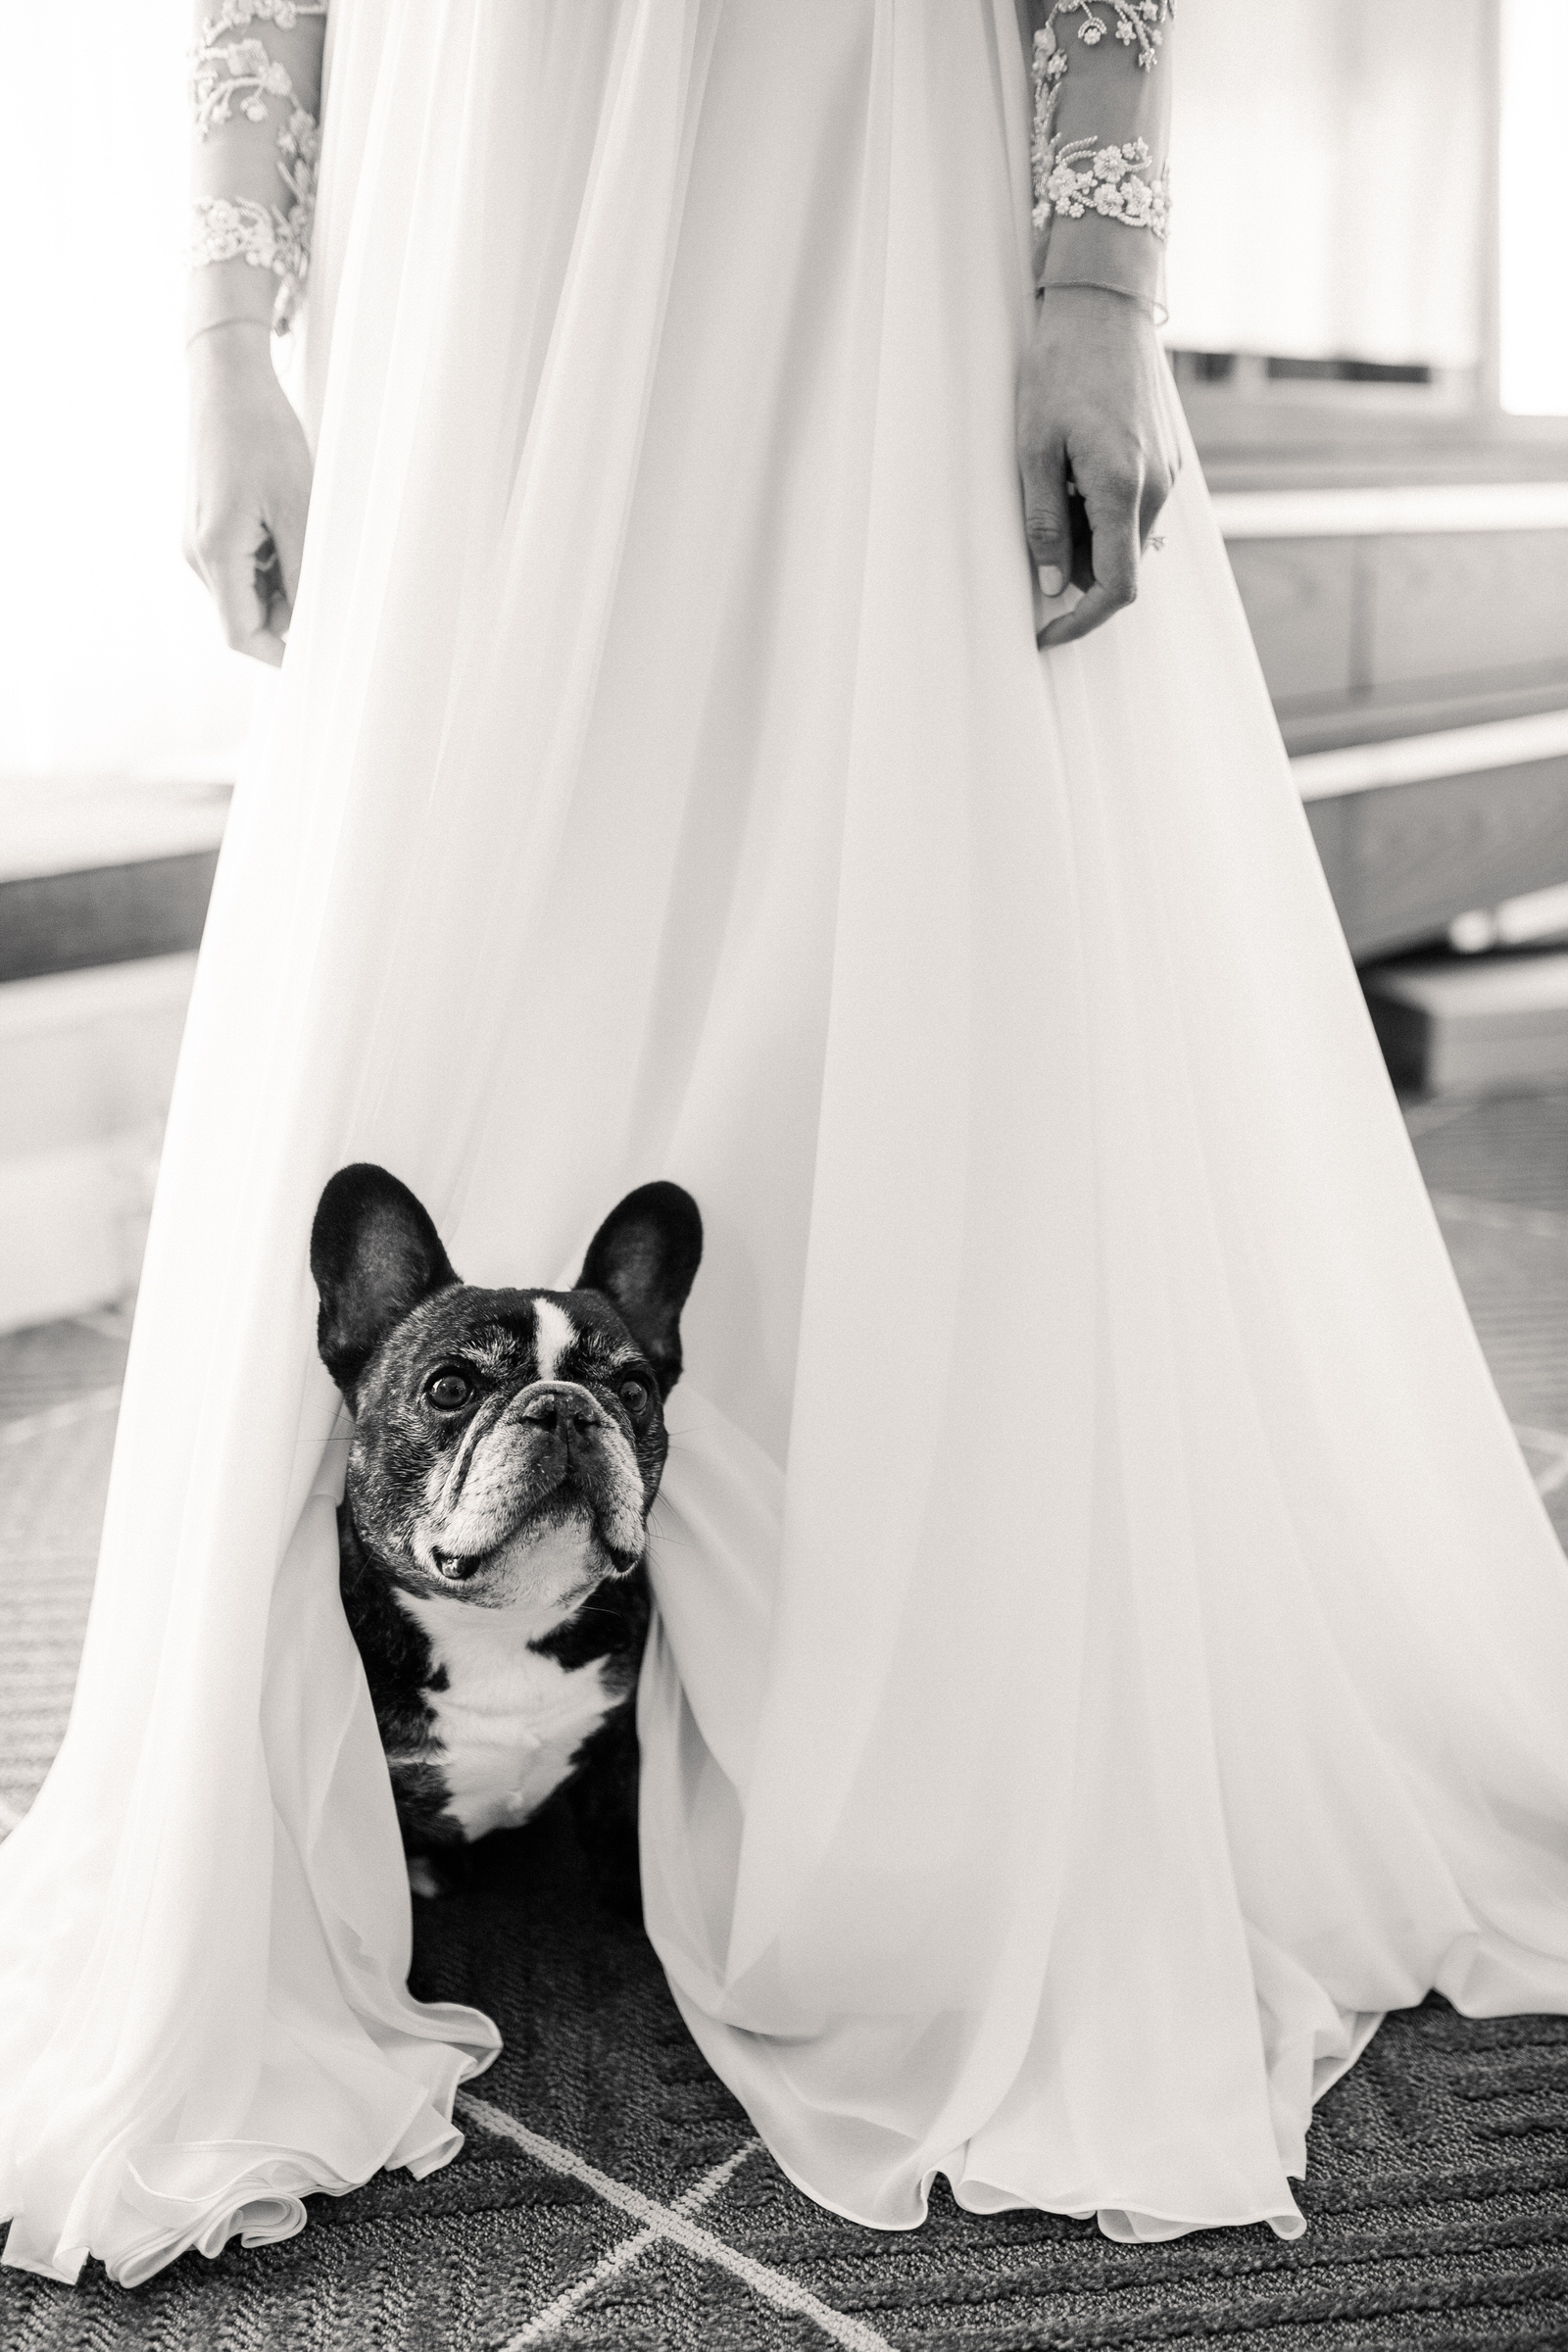 Dog peering out from wedding gown - photo by M&J Studios